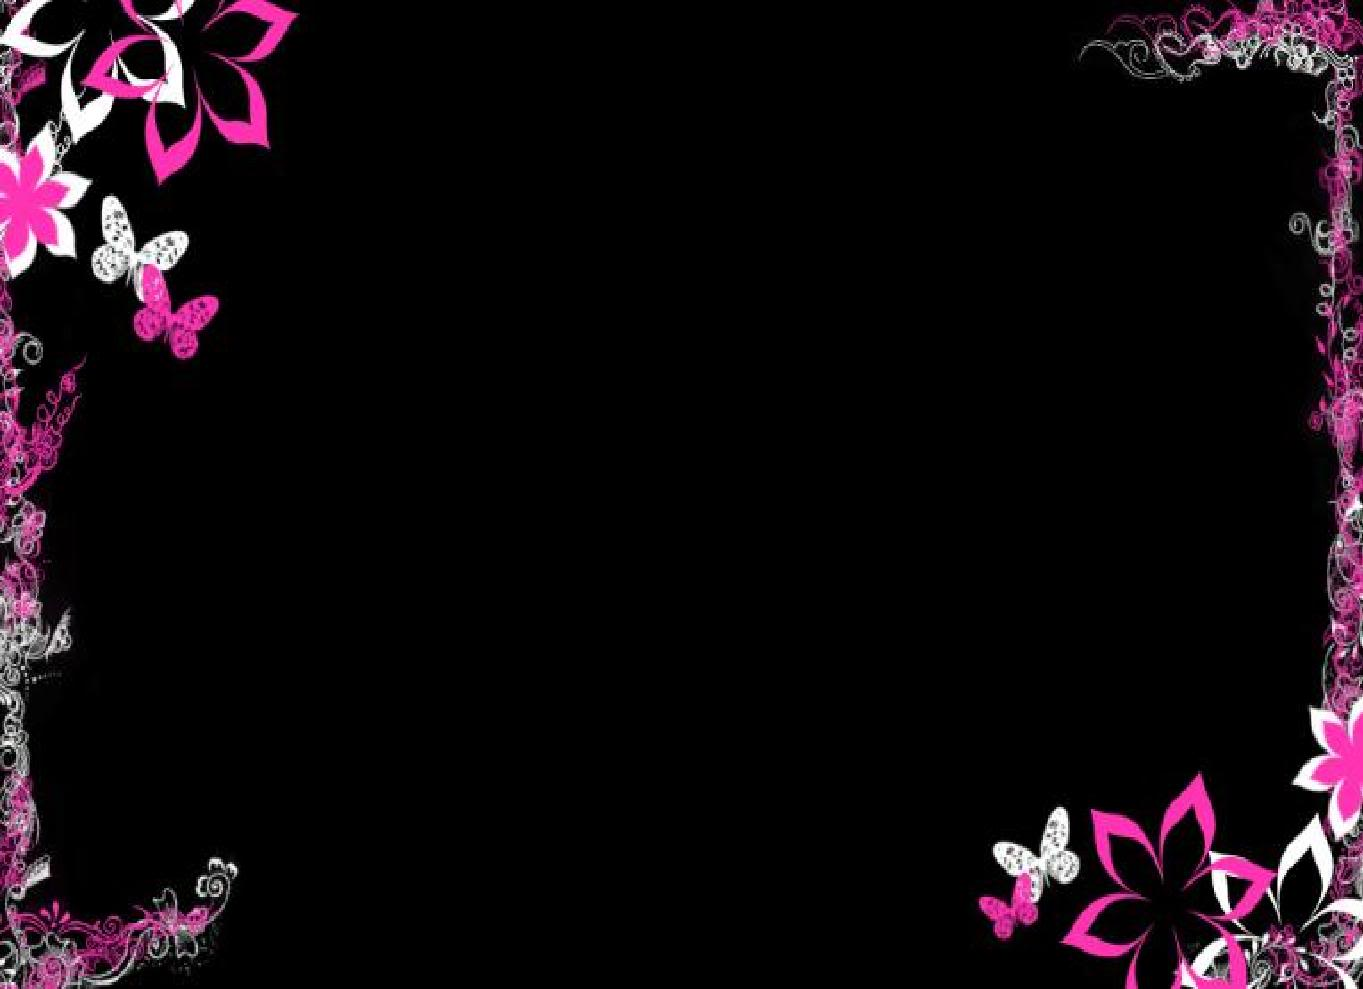 Background wallpaper flowers png library Background wallpaper flowers - ClipartFest png library